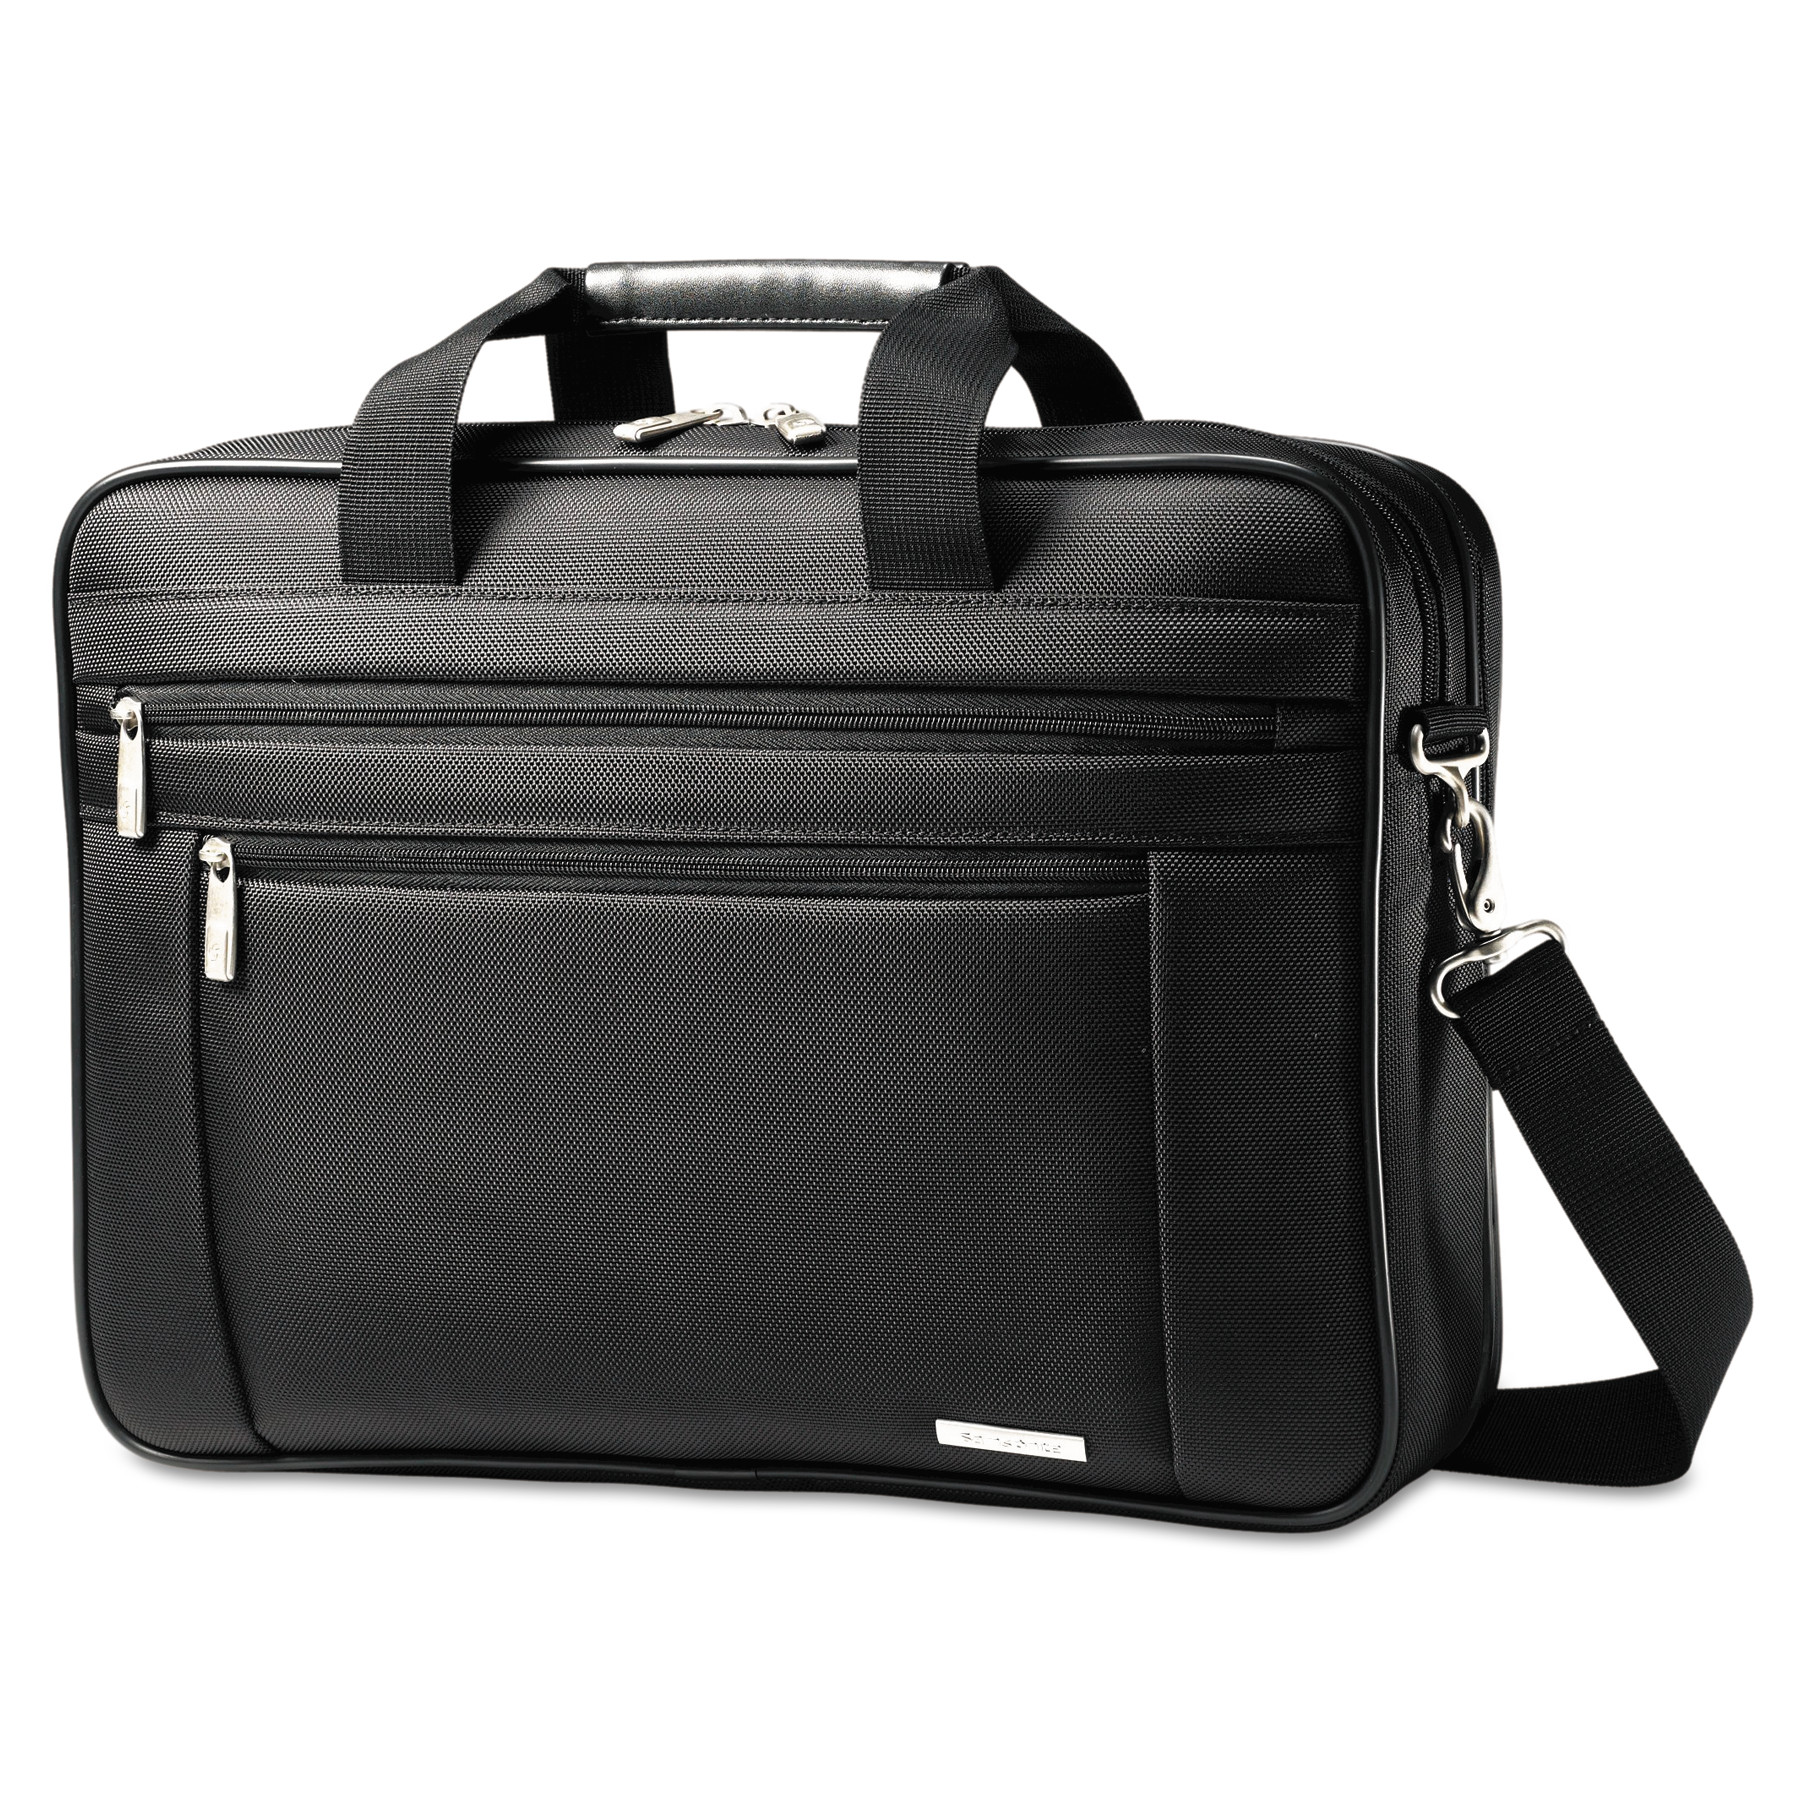 Samsonite Classic Perfect Fit Laptop Case, 16 1 2 x 4 1 2 x 12, Nylon, Black by Samsonite